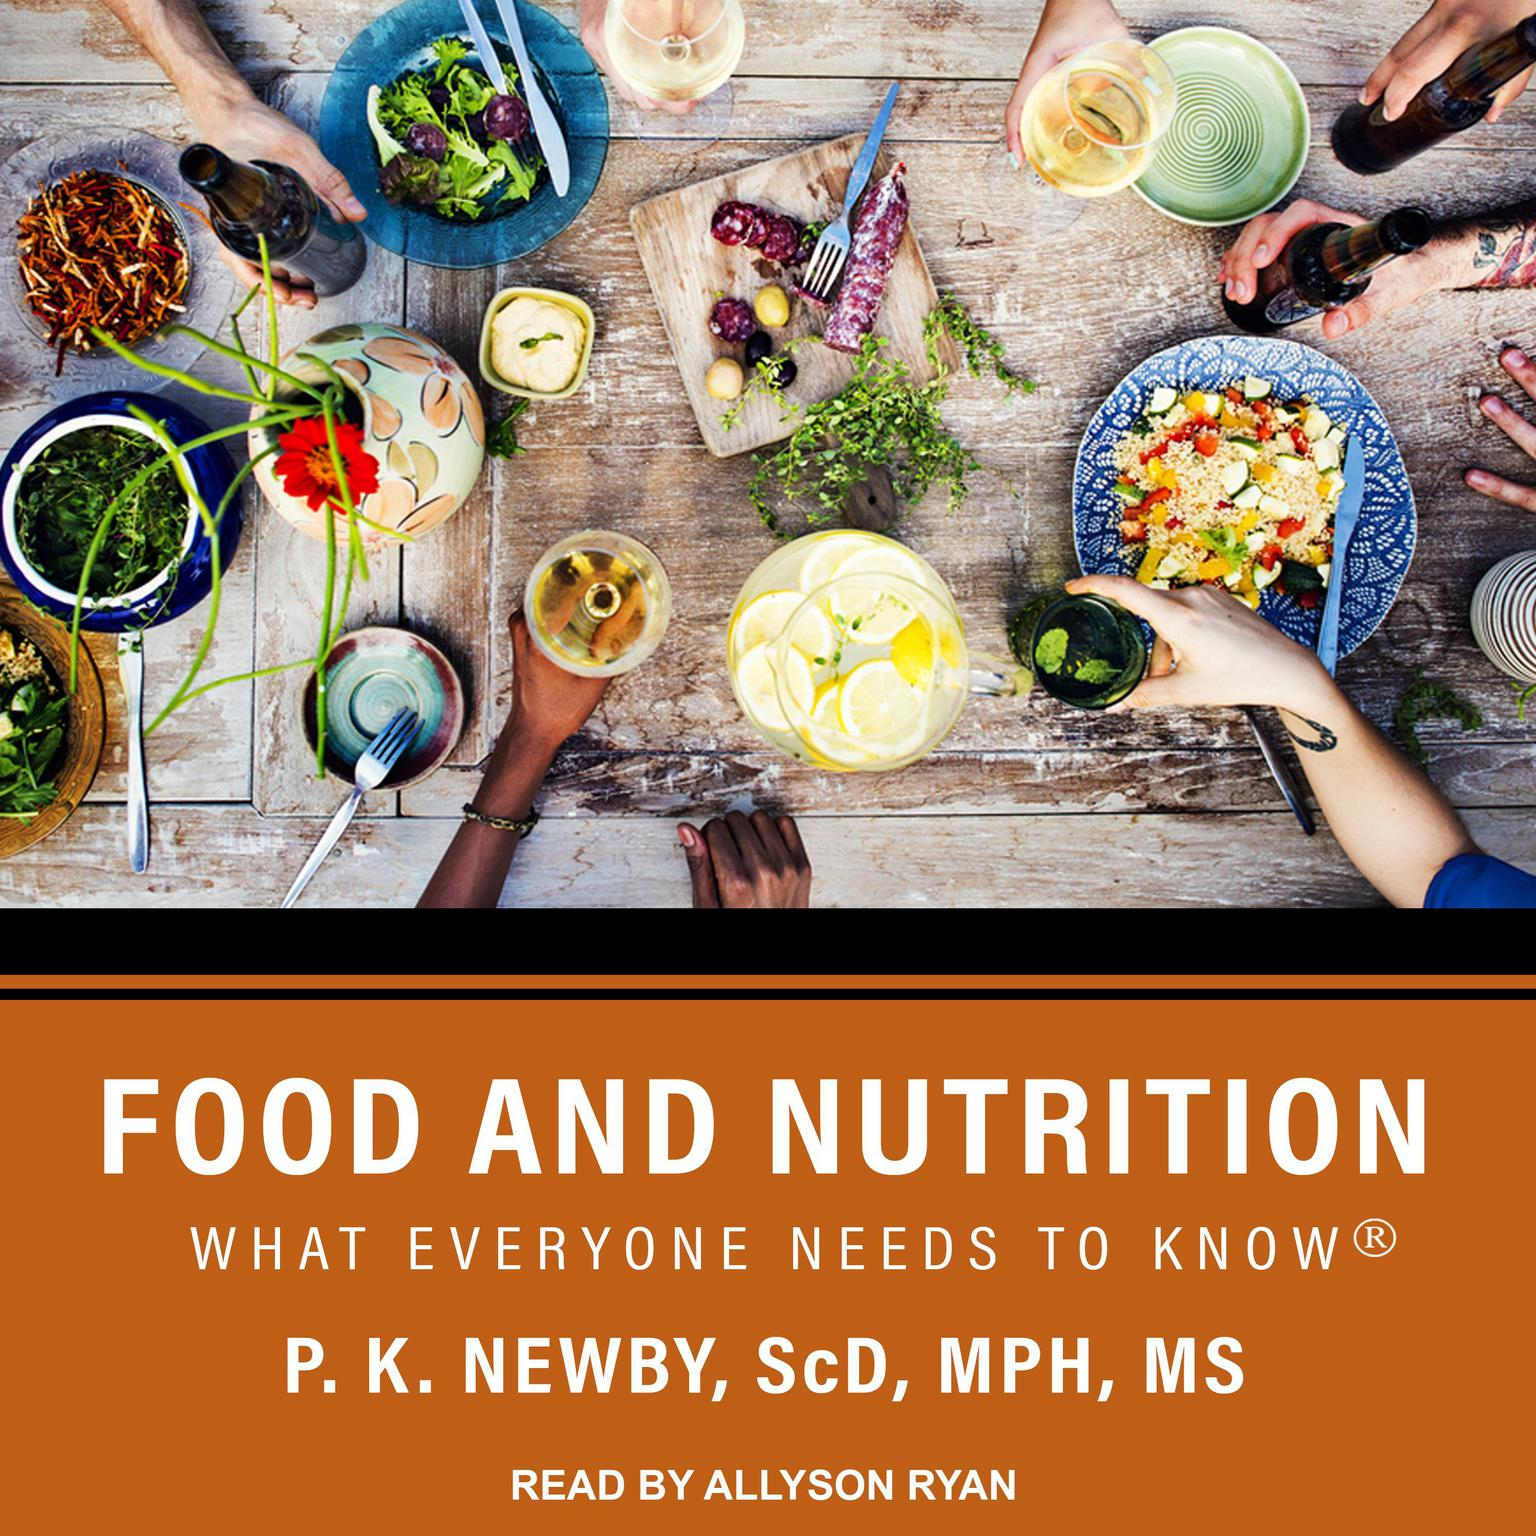 Food and Nutrition: What Everyone Needs to Know Audiobook, by P. K. Newby